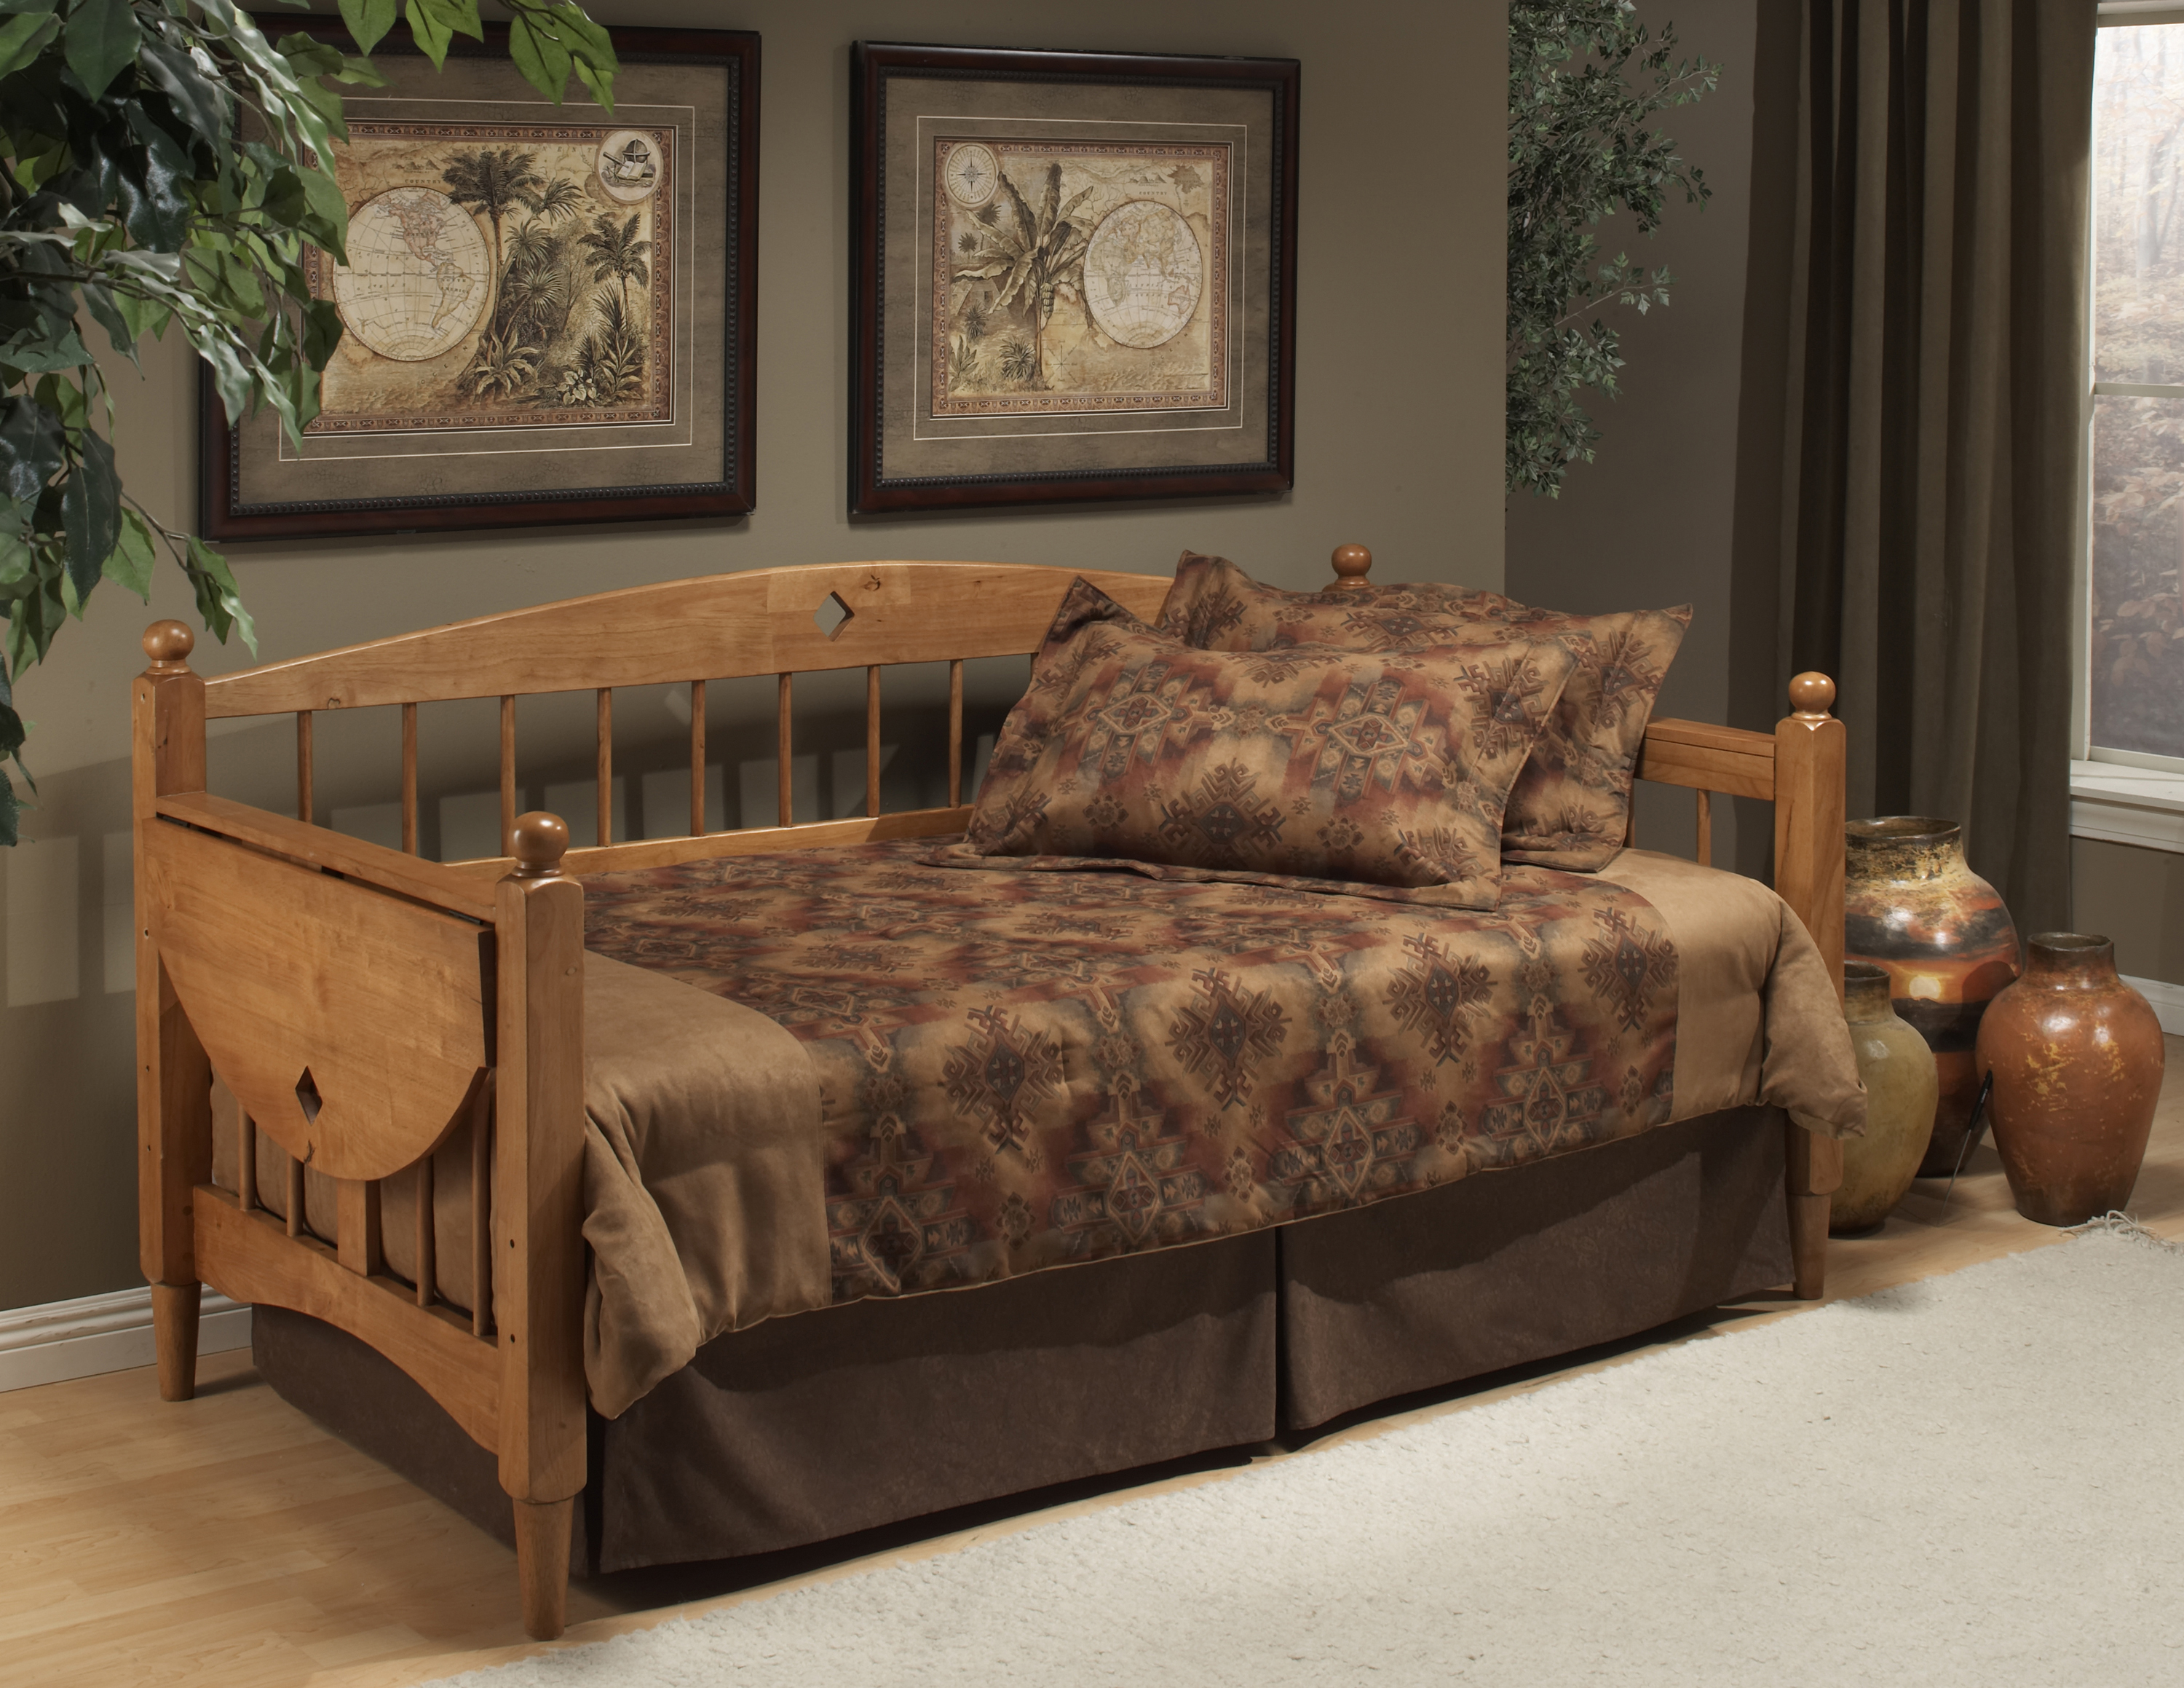 Hillsdale Daybeds Daybed with Suspension Deck and Trundle - Item Number: 1393DBLHTR